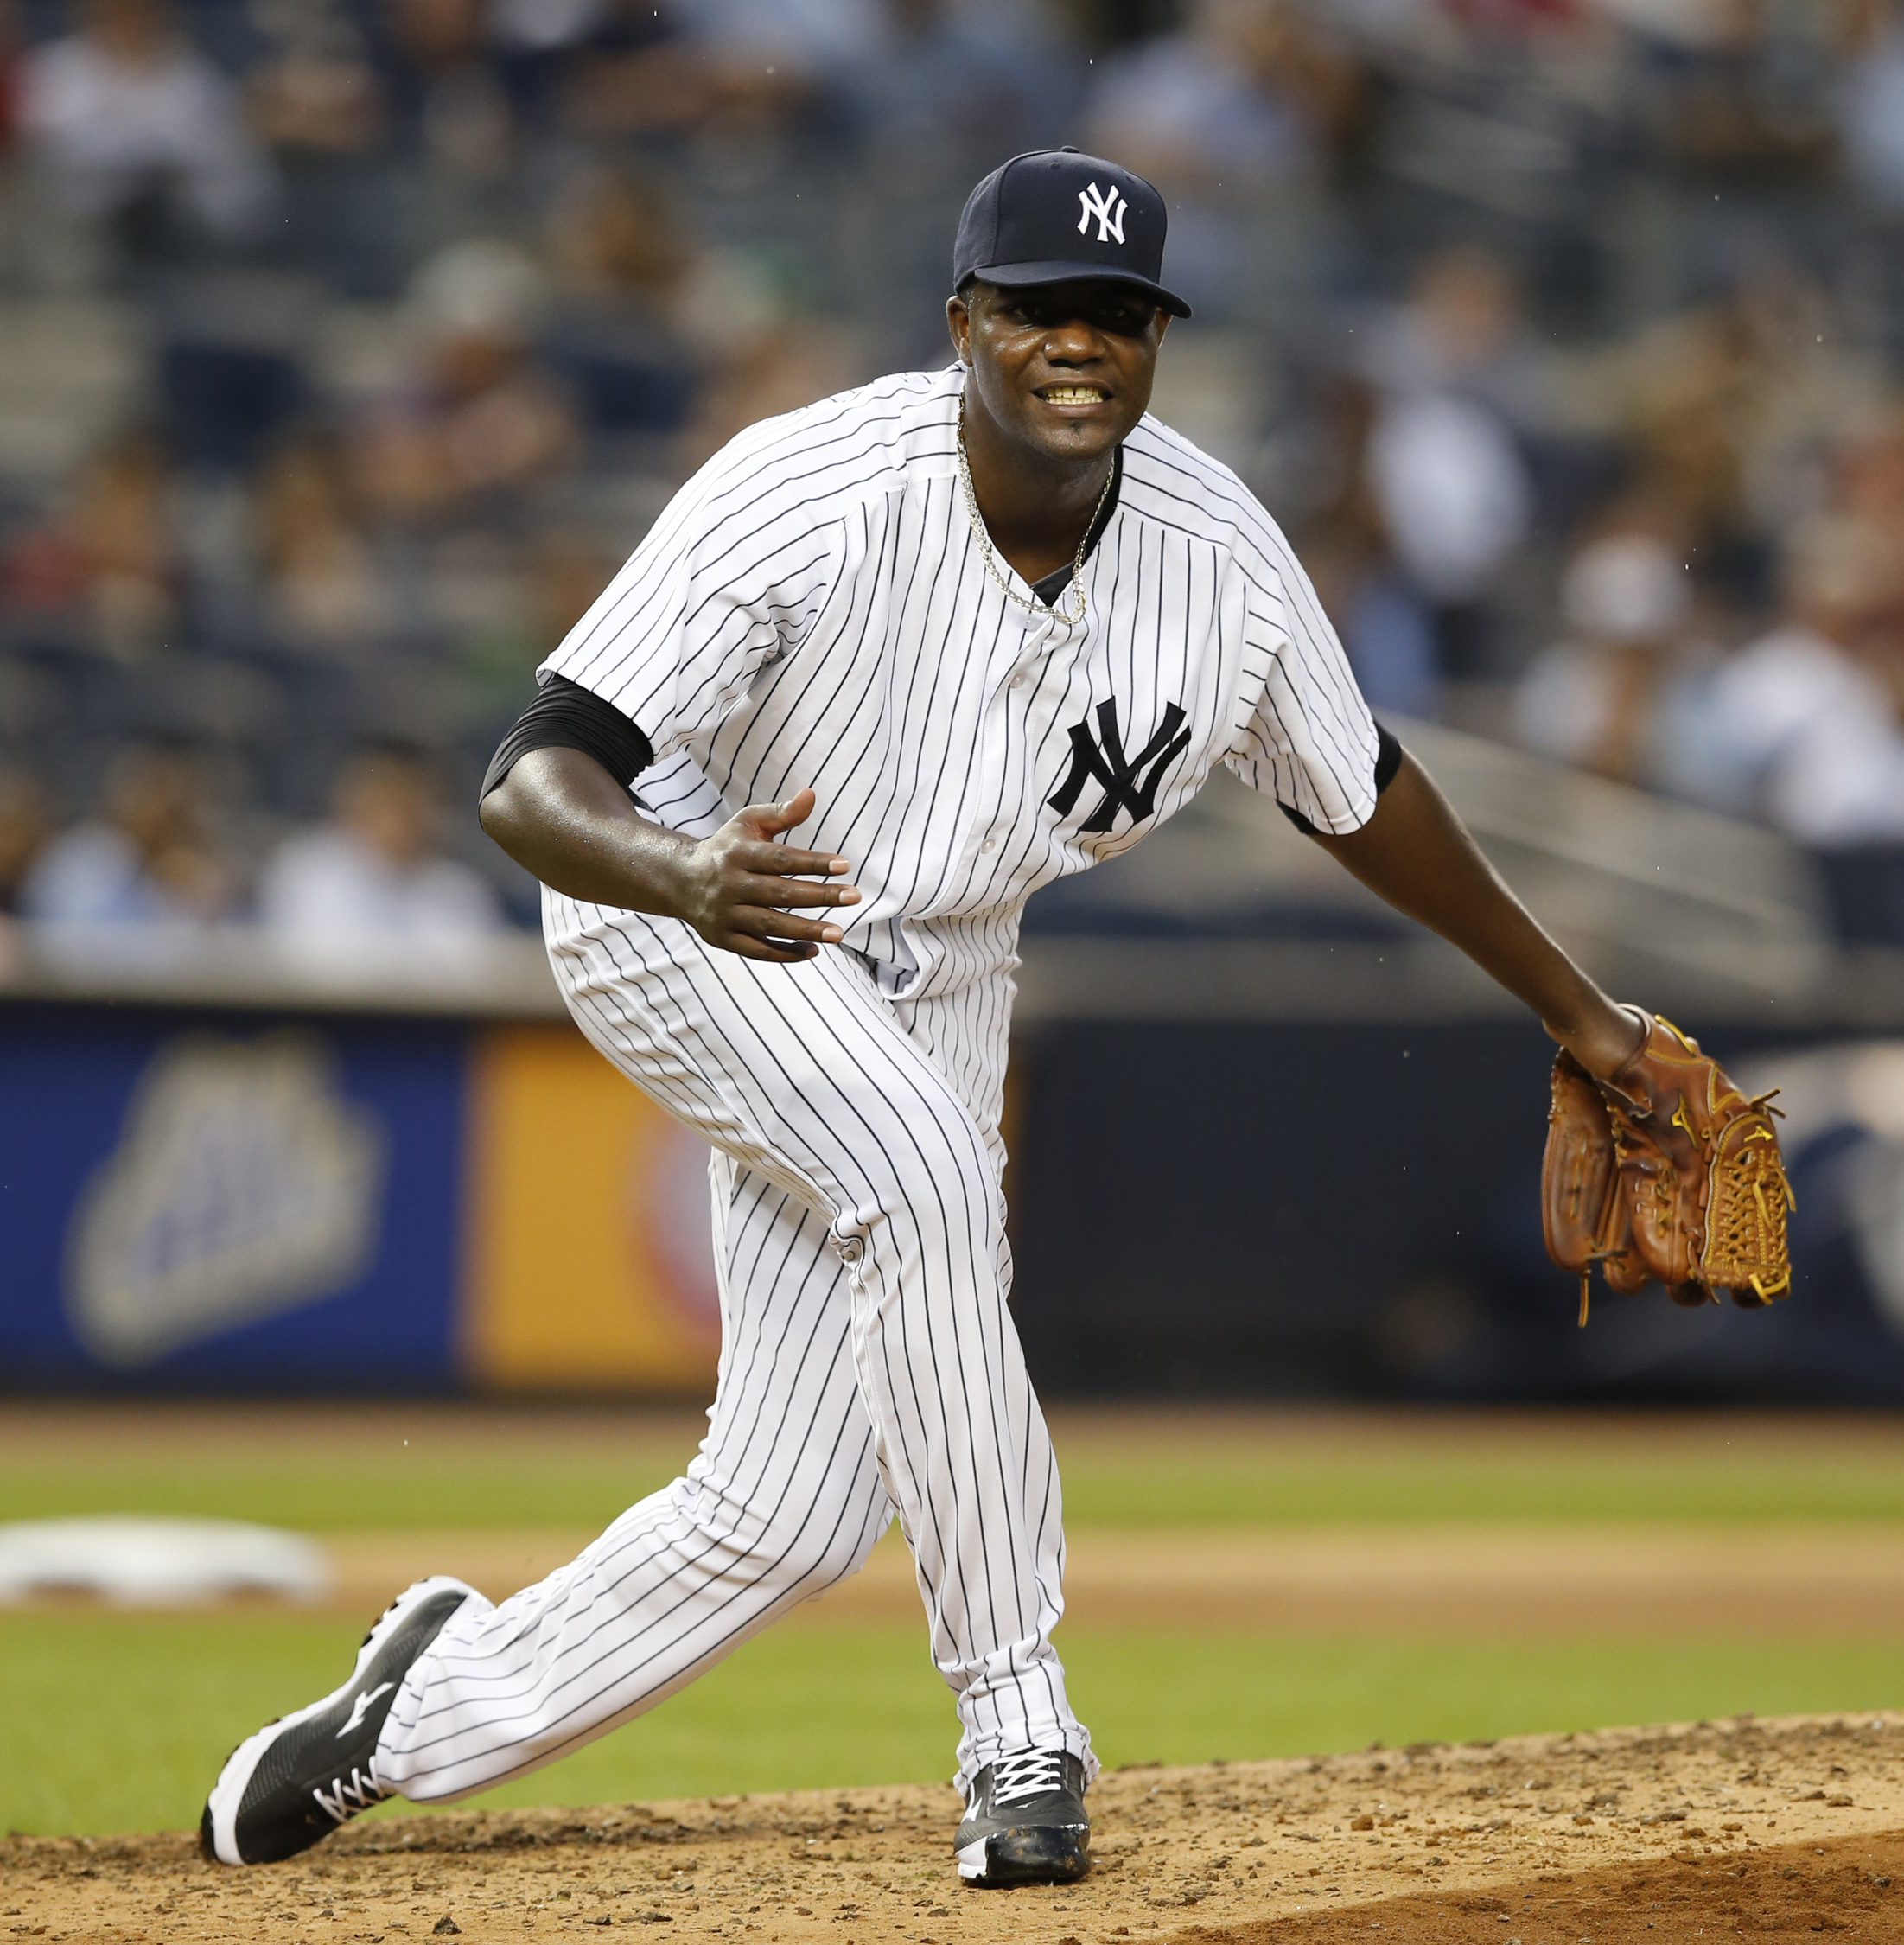 New York Yankees starting pitcher Michael Pineda (35) reacts after allowing a fourth-inning walk to Miami Marlins' Christian Yelich (21) in a baseball game at Yankee Stadium in New York, Wednesday, June 17, 2015. (AP Photo/Kathy Willens)